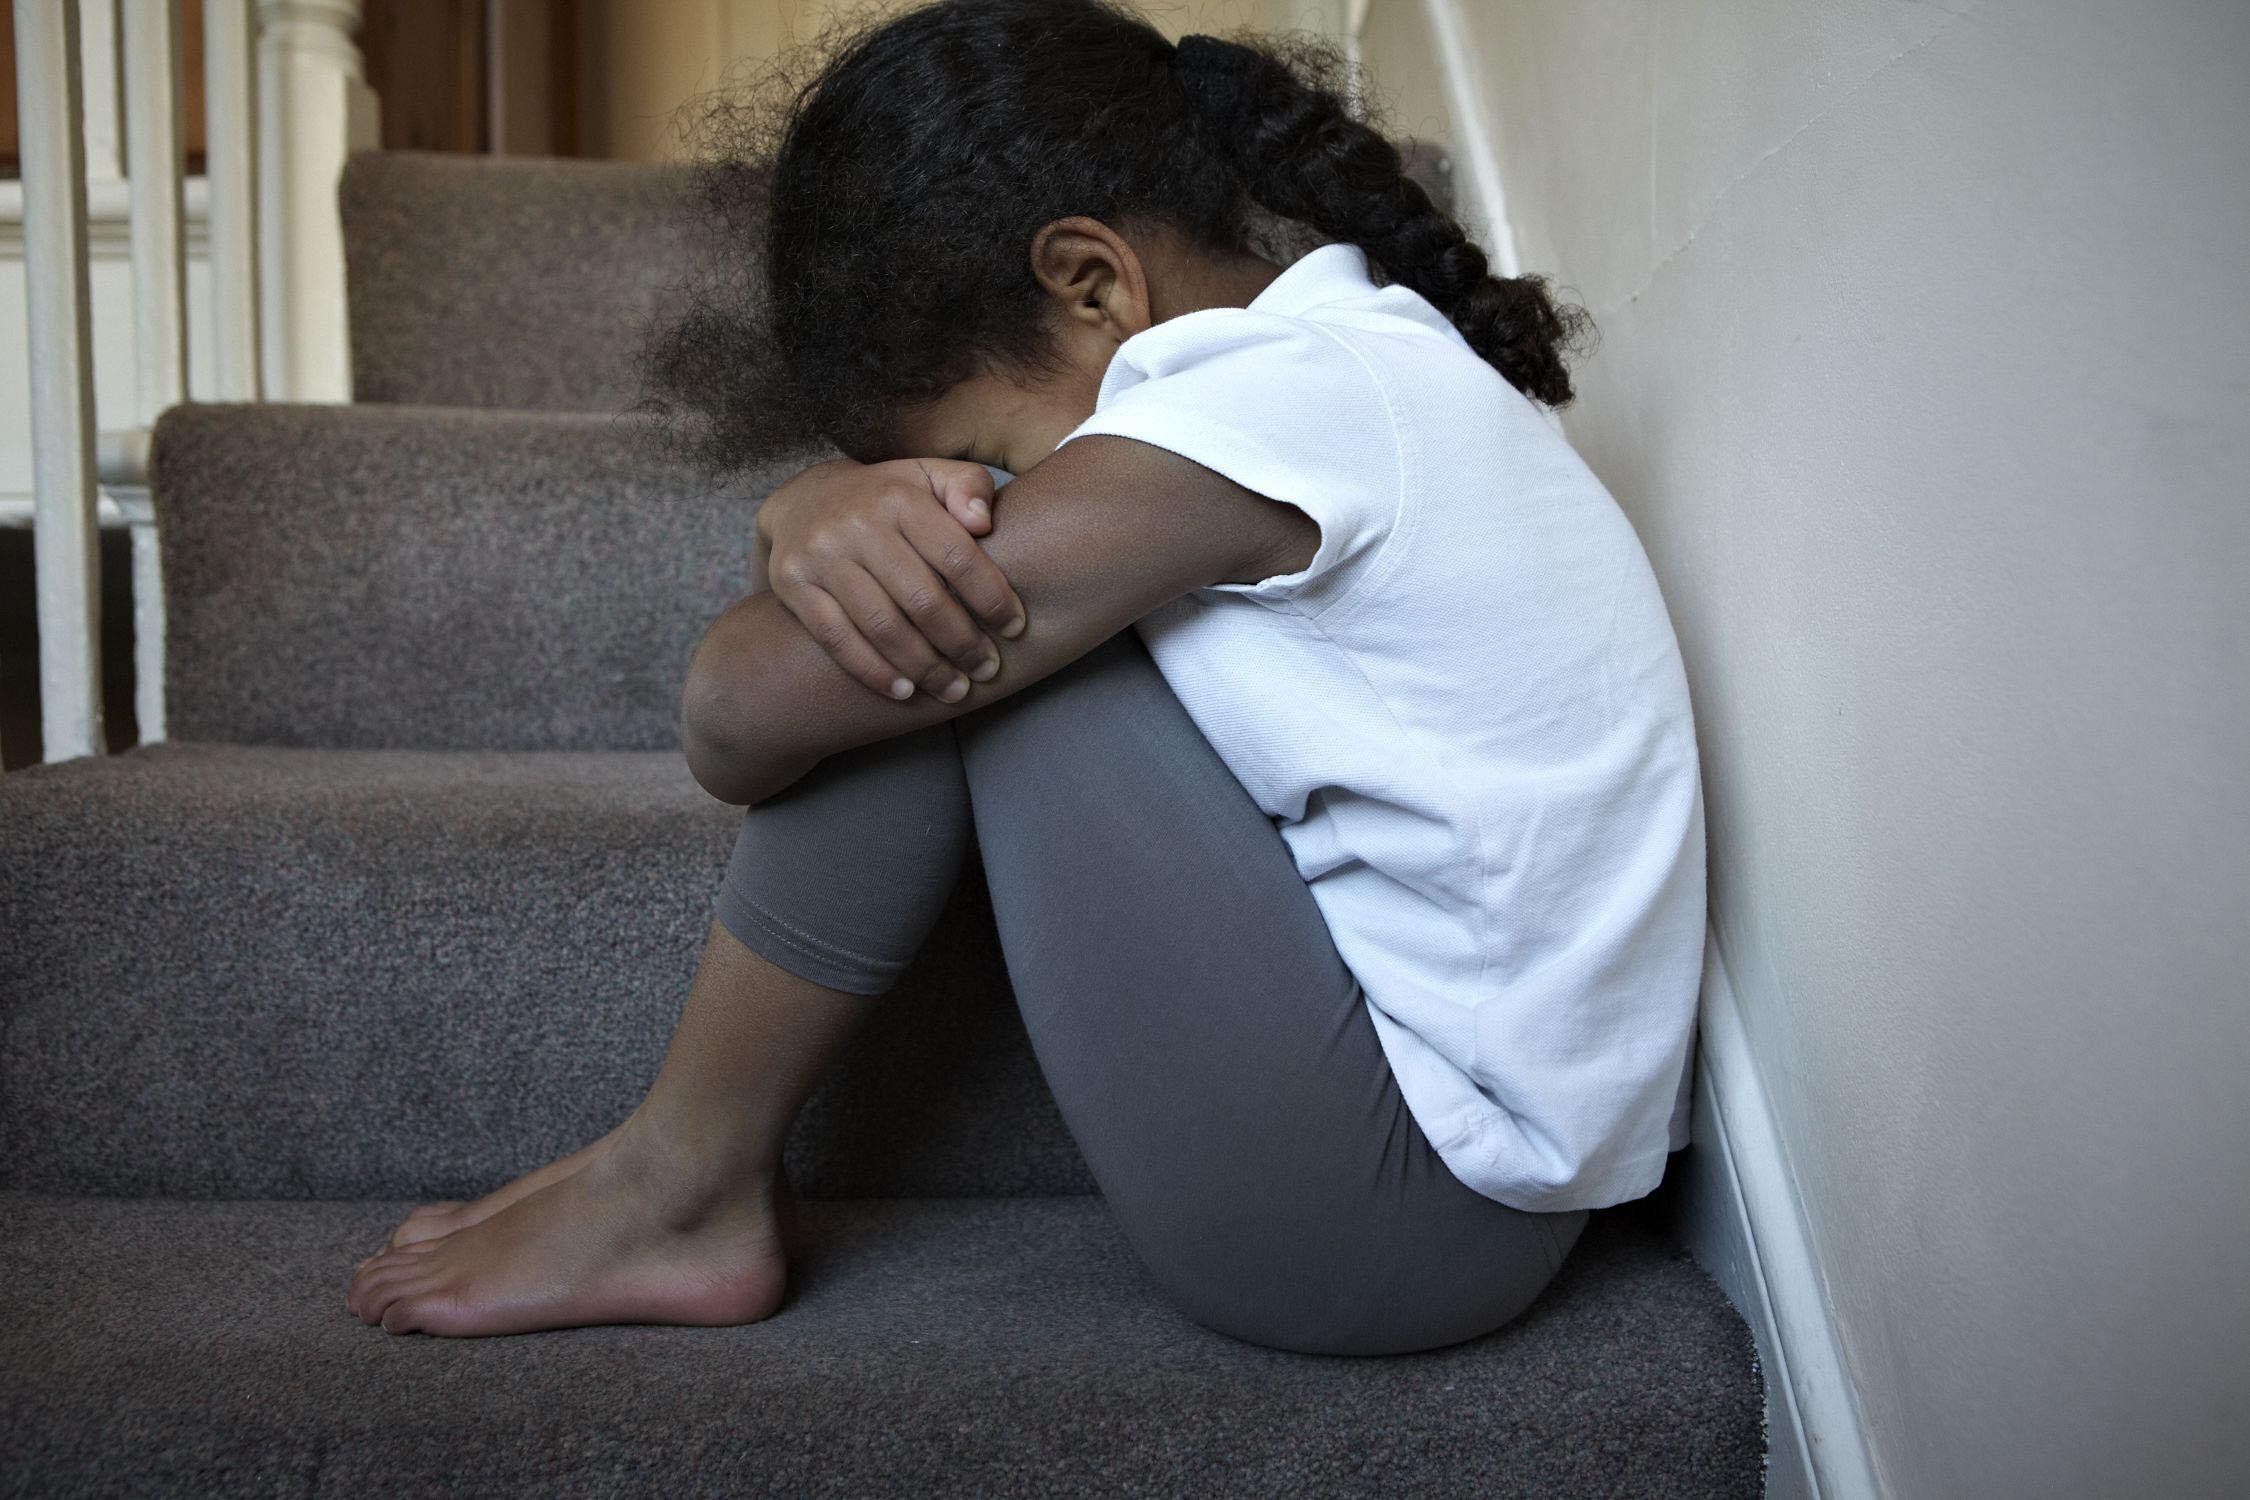 More than 200 children overall went missing in Bracknell in 2016/17 - Picture: Press Association